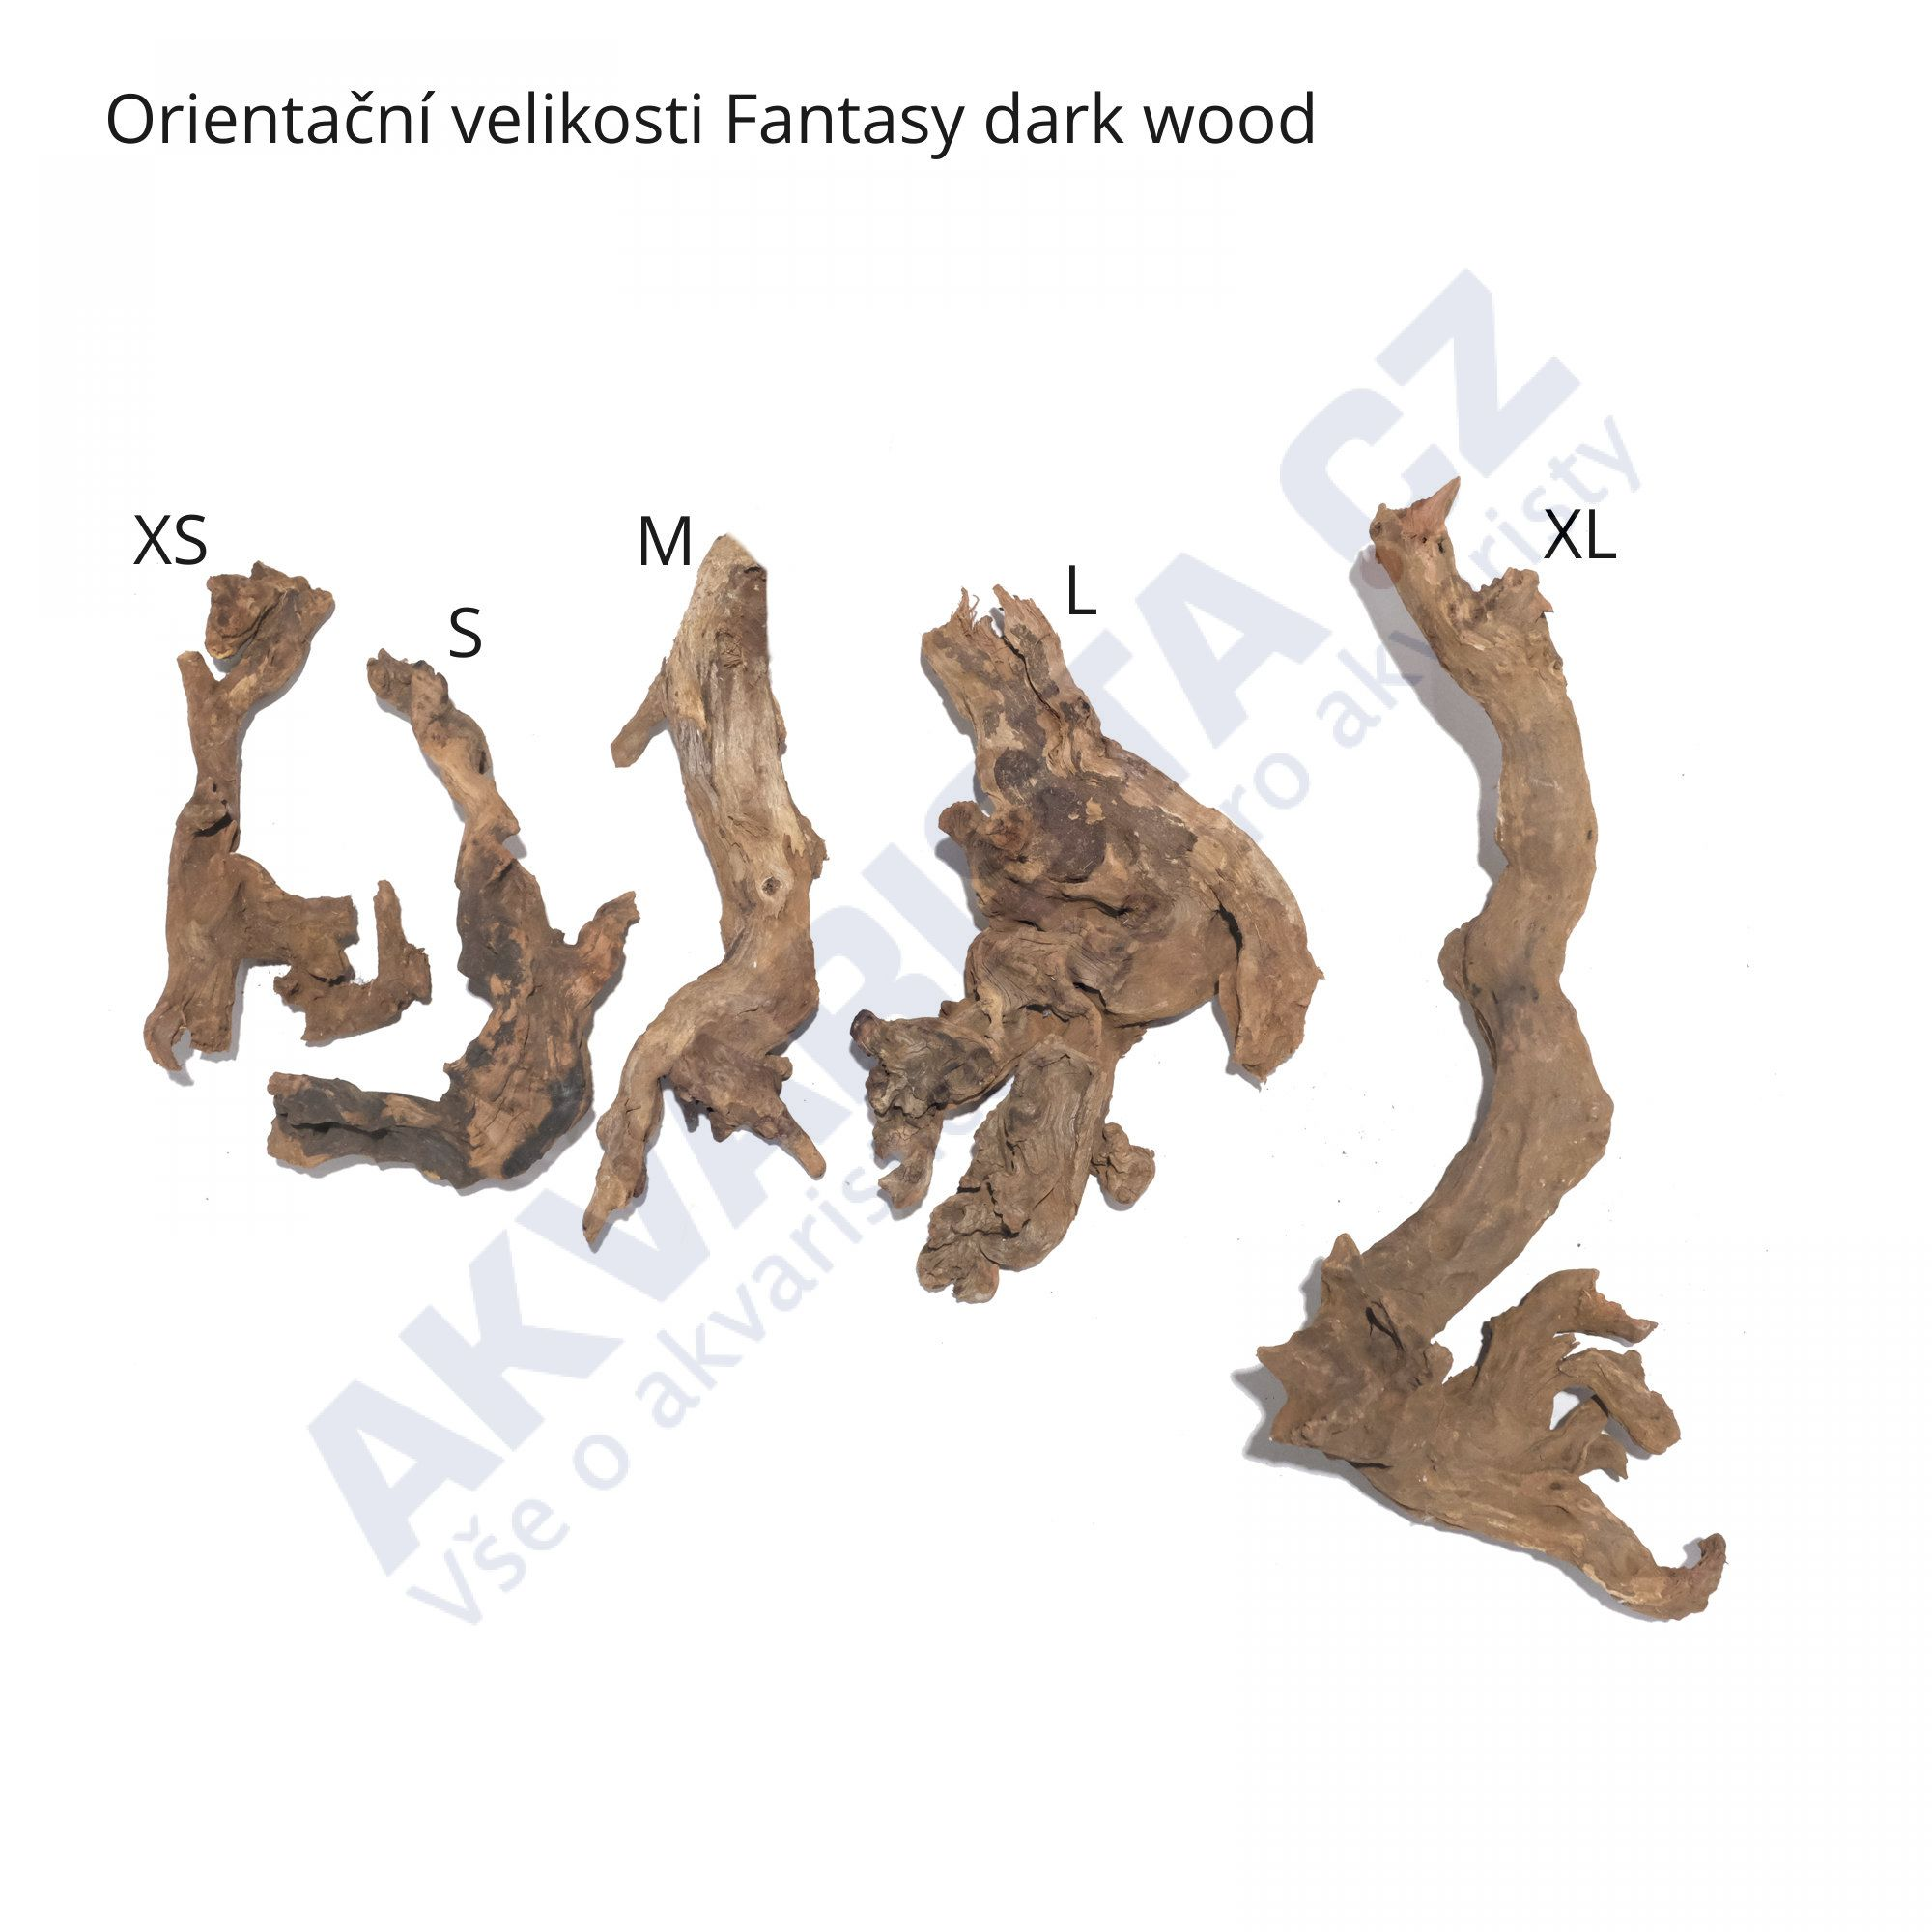 Fantasy dark wood S